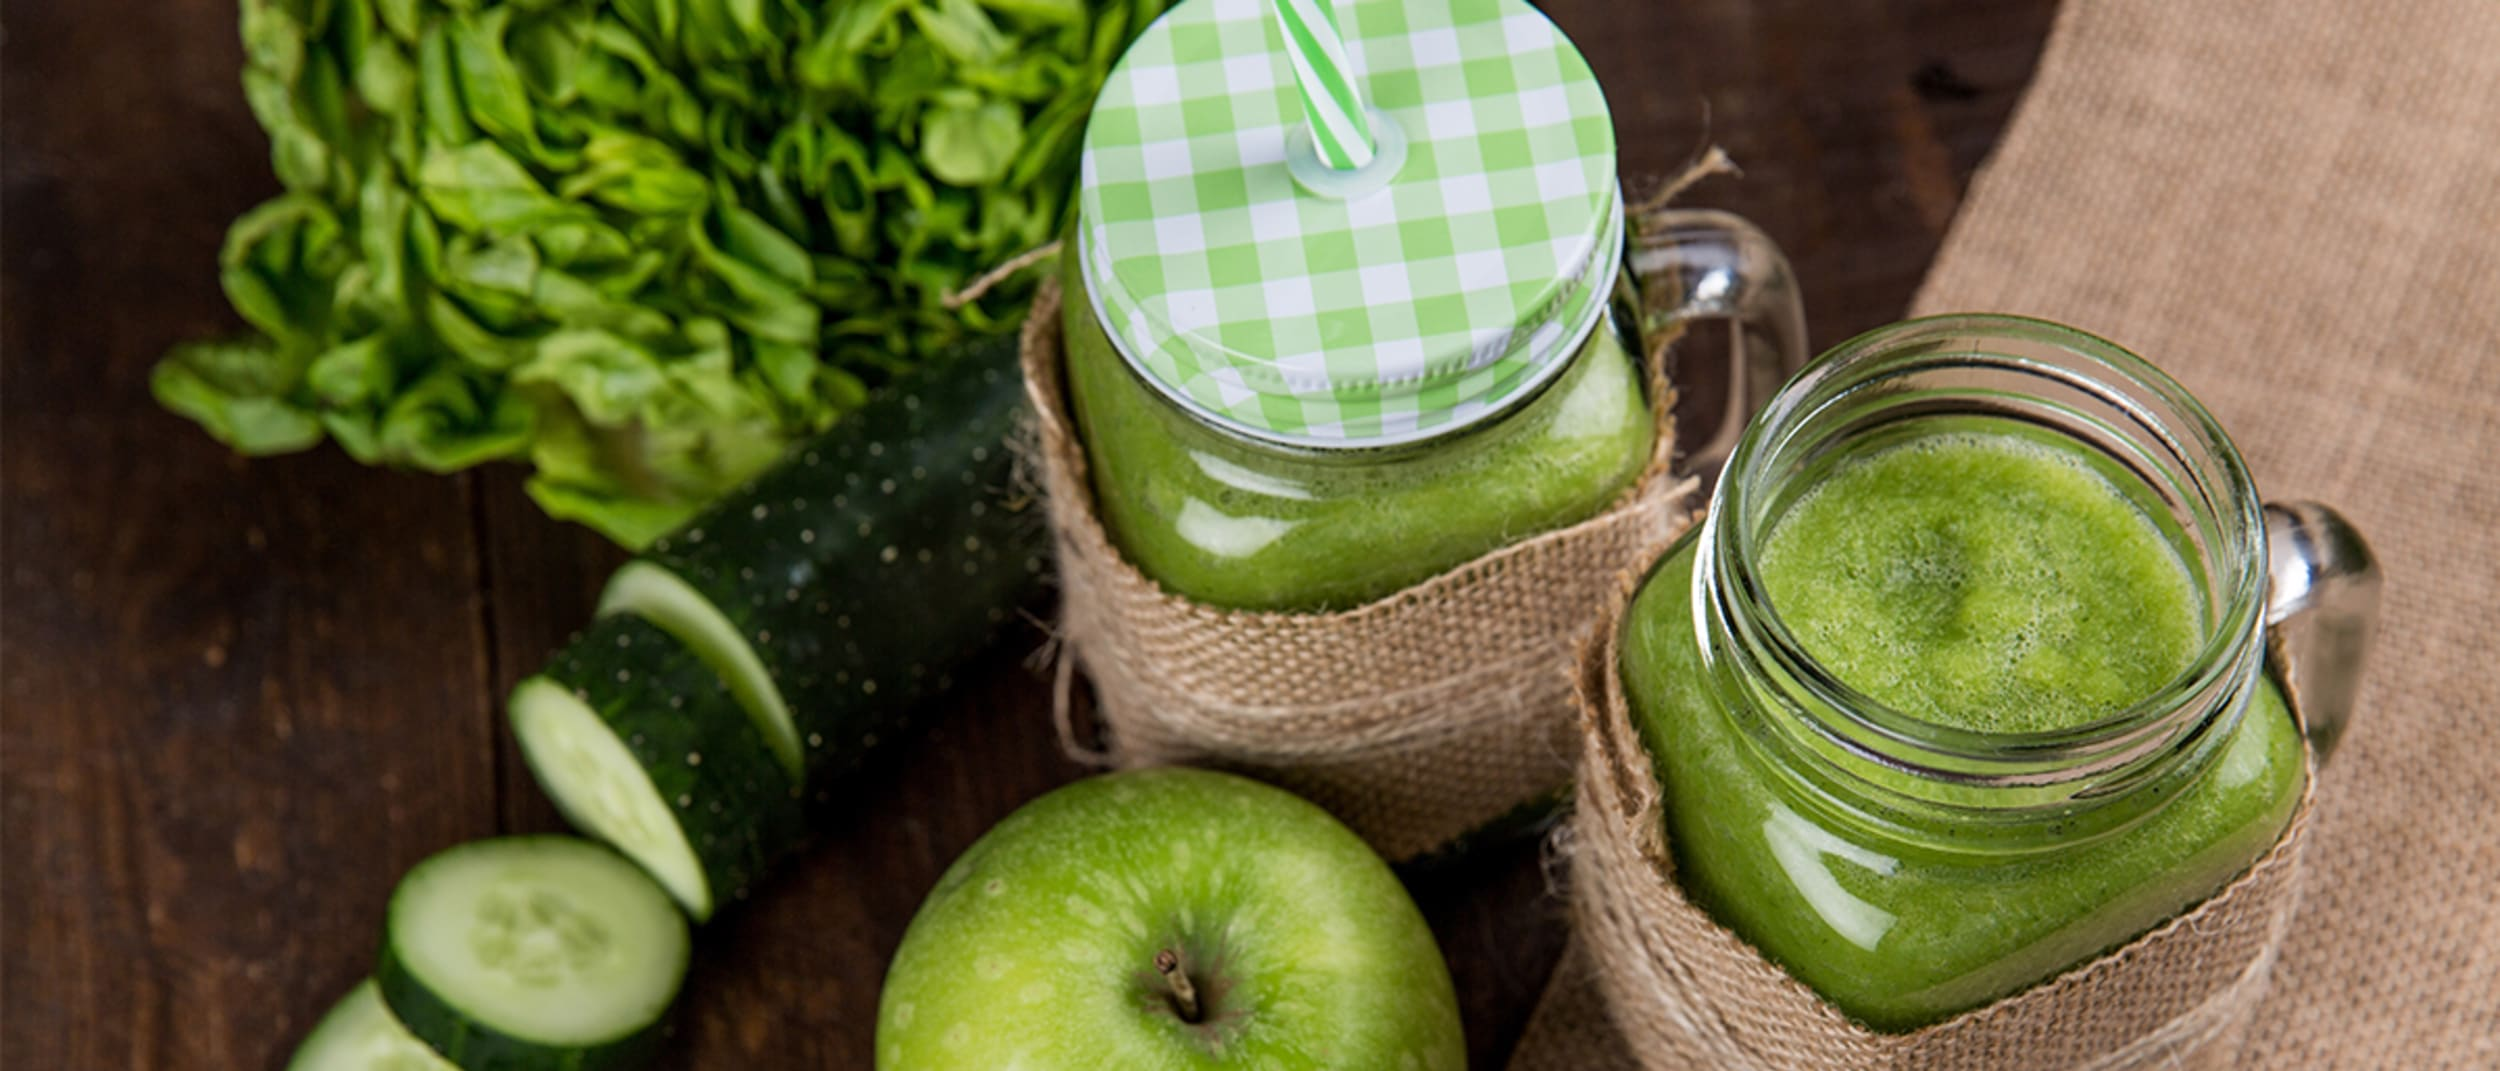 Autumn juices: fresh combinations and their health benefits